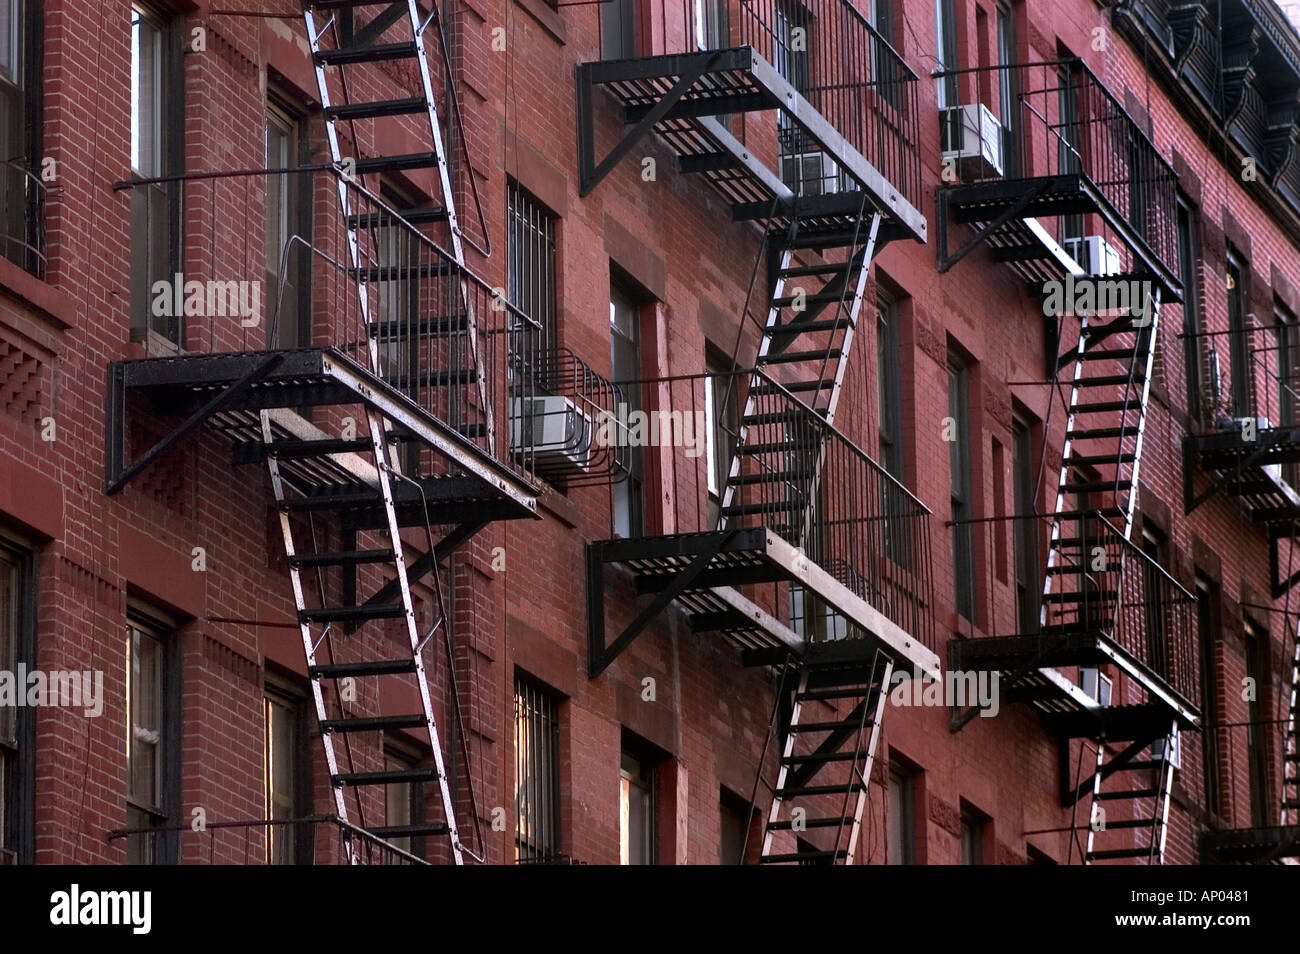 RED BRICK BUILDING and BLACK METAL FIRE FIRE ESCAPE STAIRS ...